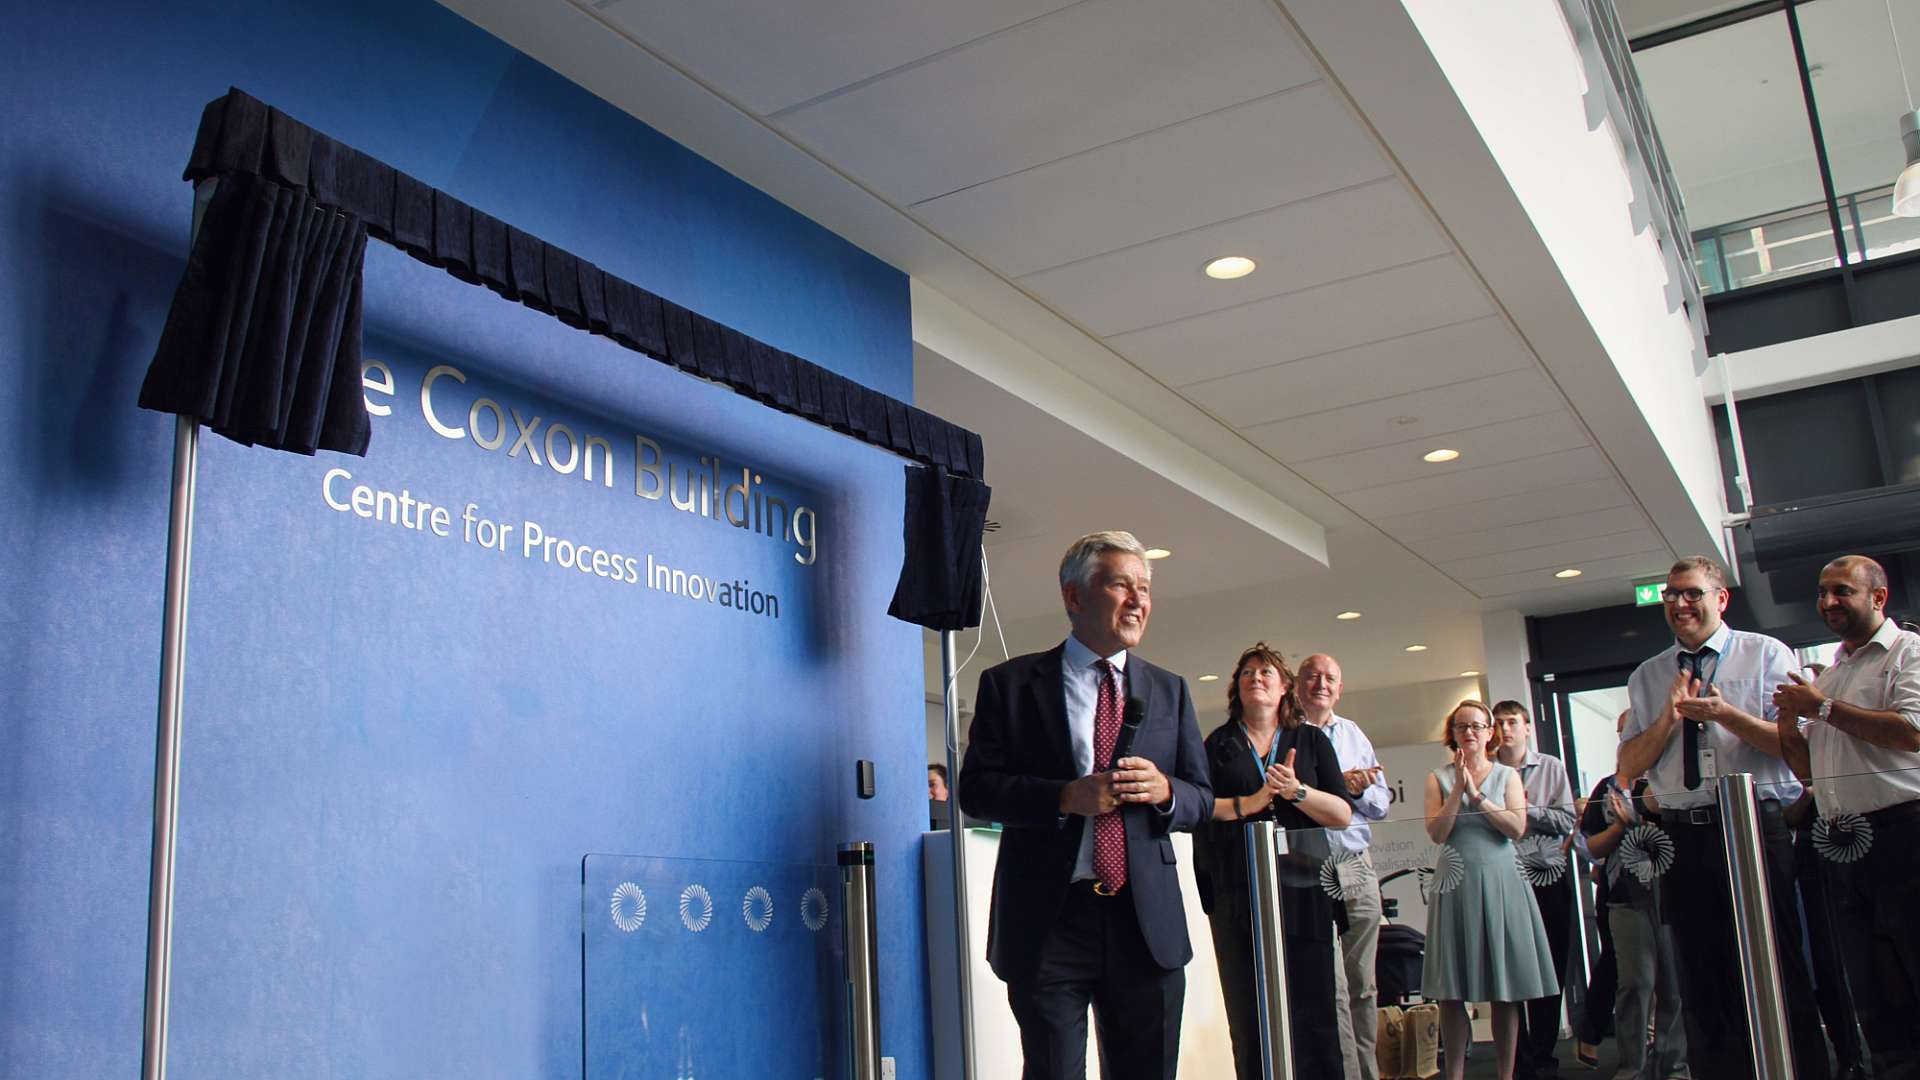 Bob Coxon unveils the wall plaque during CPI's naming ceremony